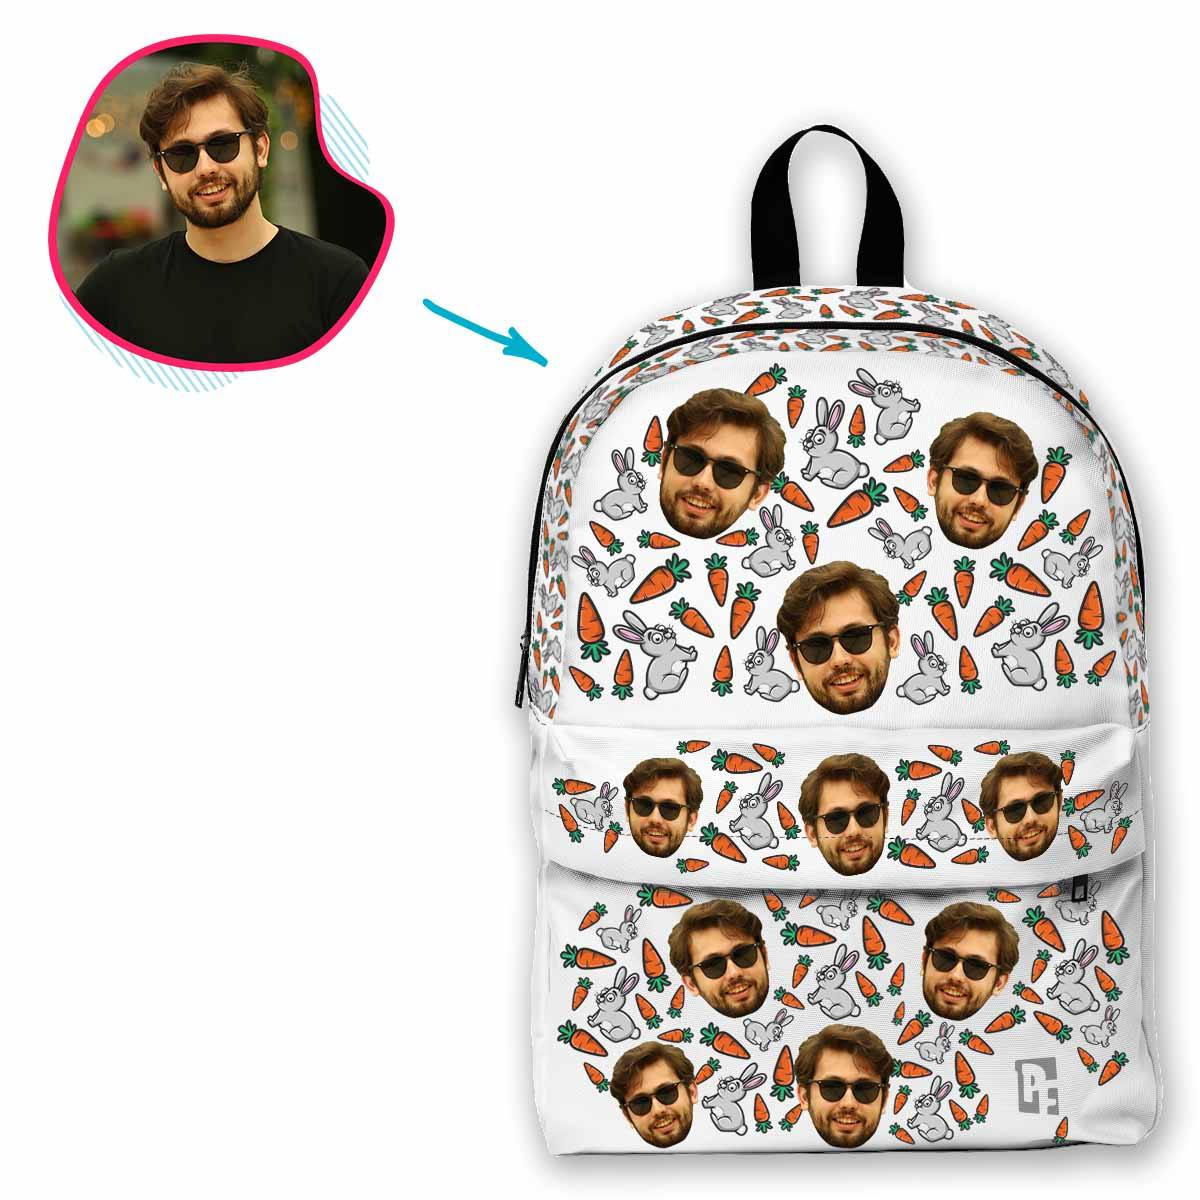 purple Bunny classic backpack personalized with photo of face printed on it